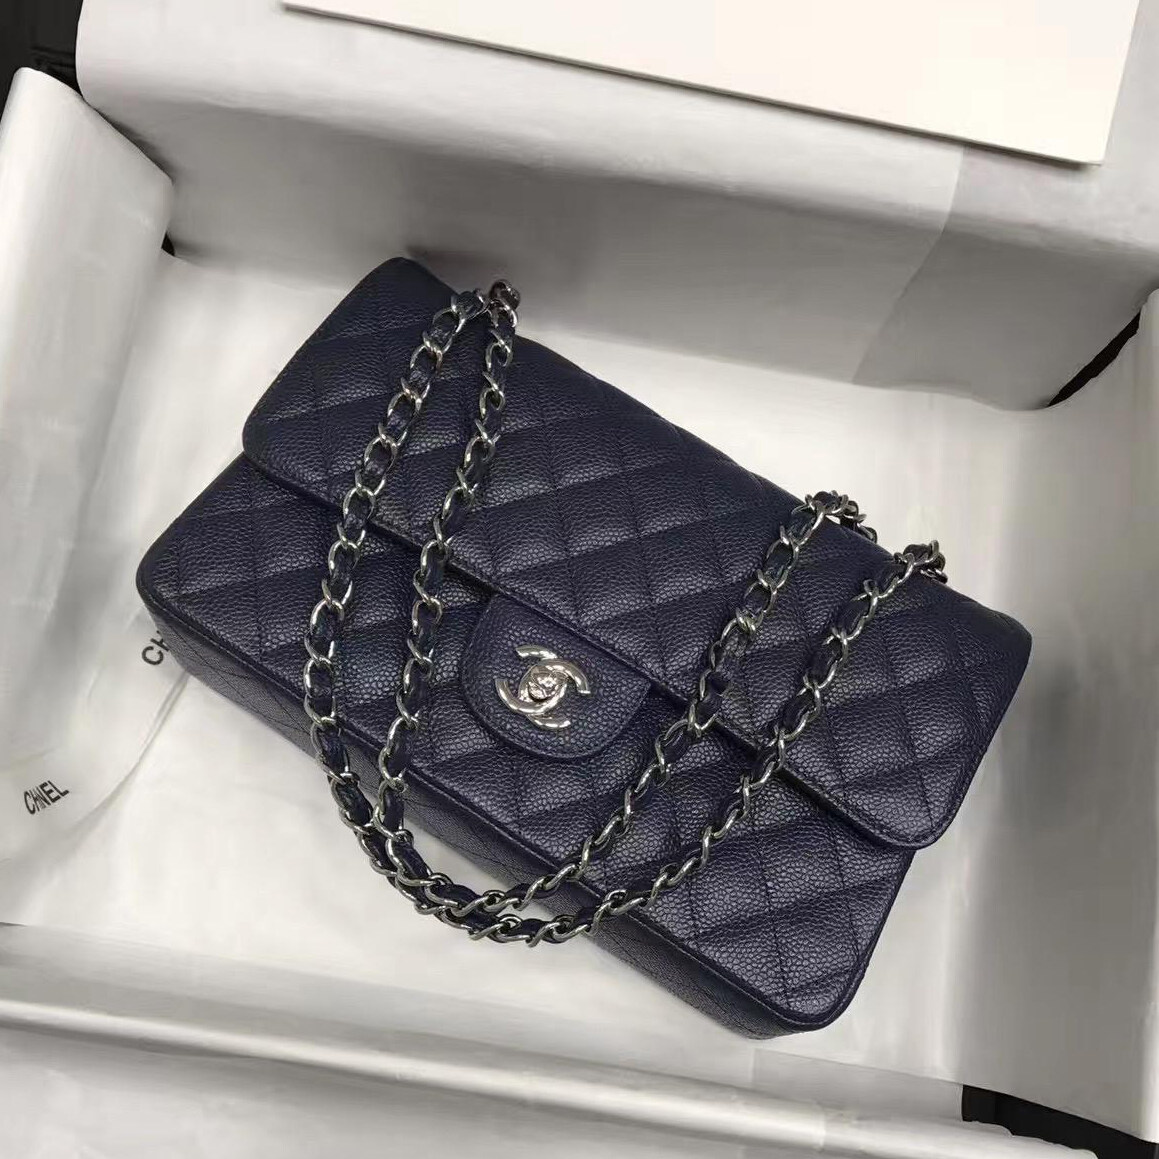 6cabe8dc61e2fe Chanel bags online women's handbags medium Leather Chanel 2.55 Classic Flap  Quilted Caviar Shoulder chanel replica ...